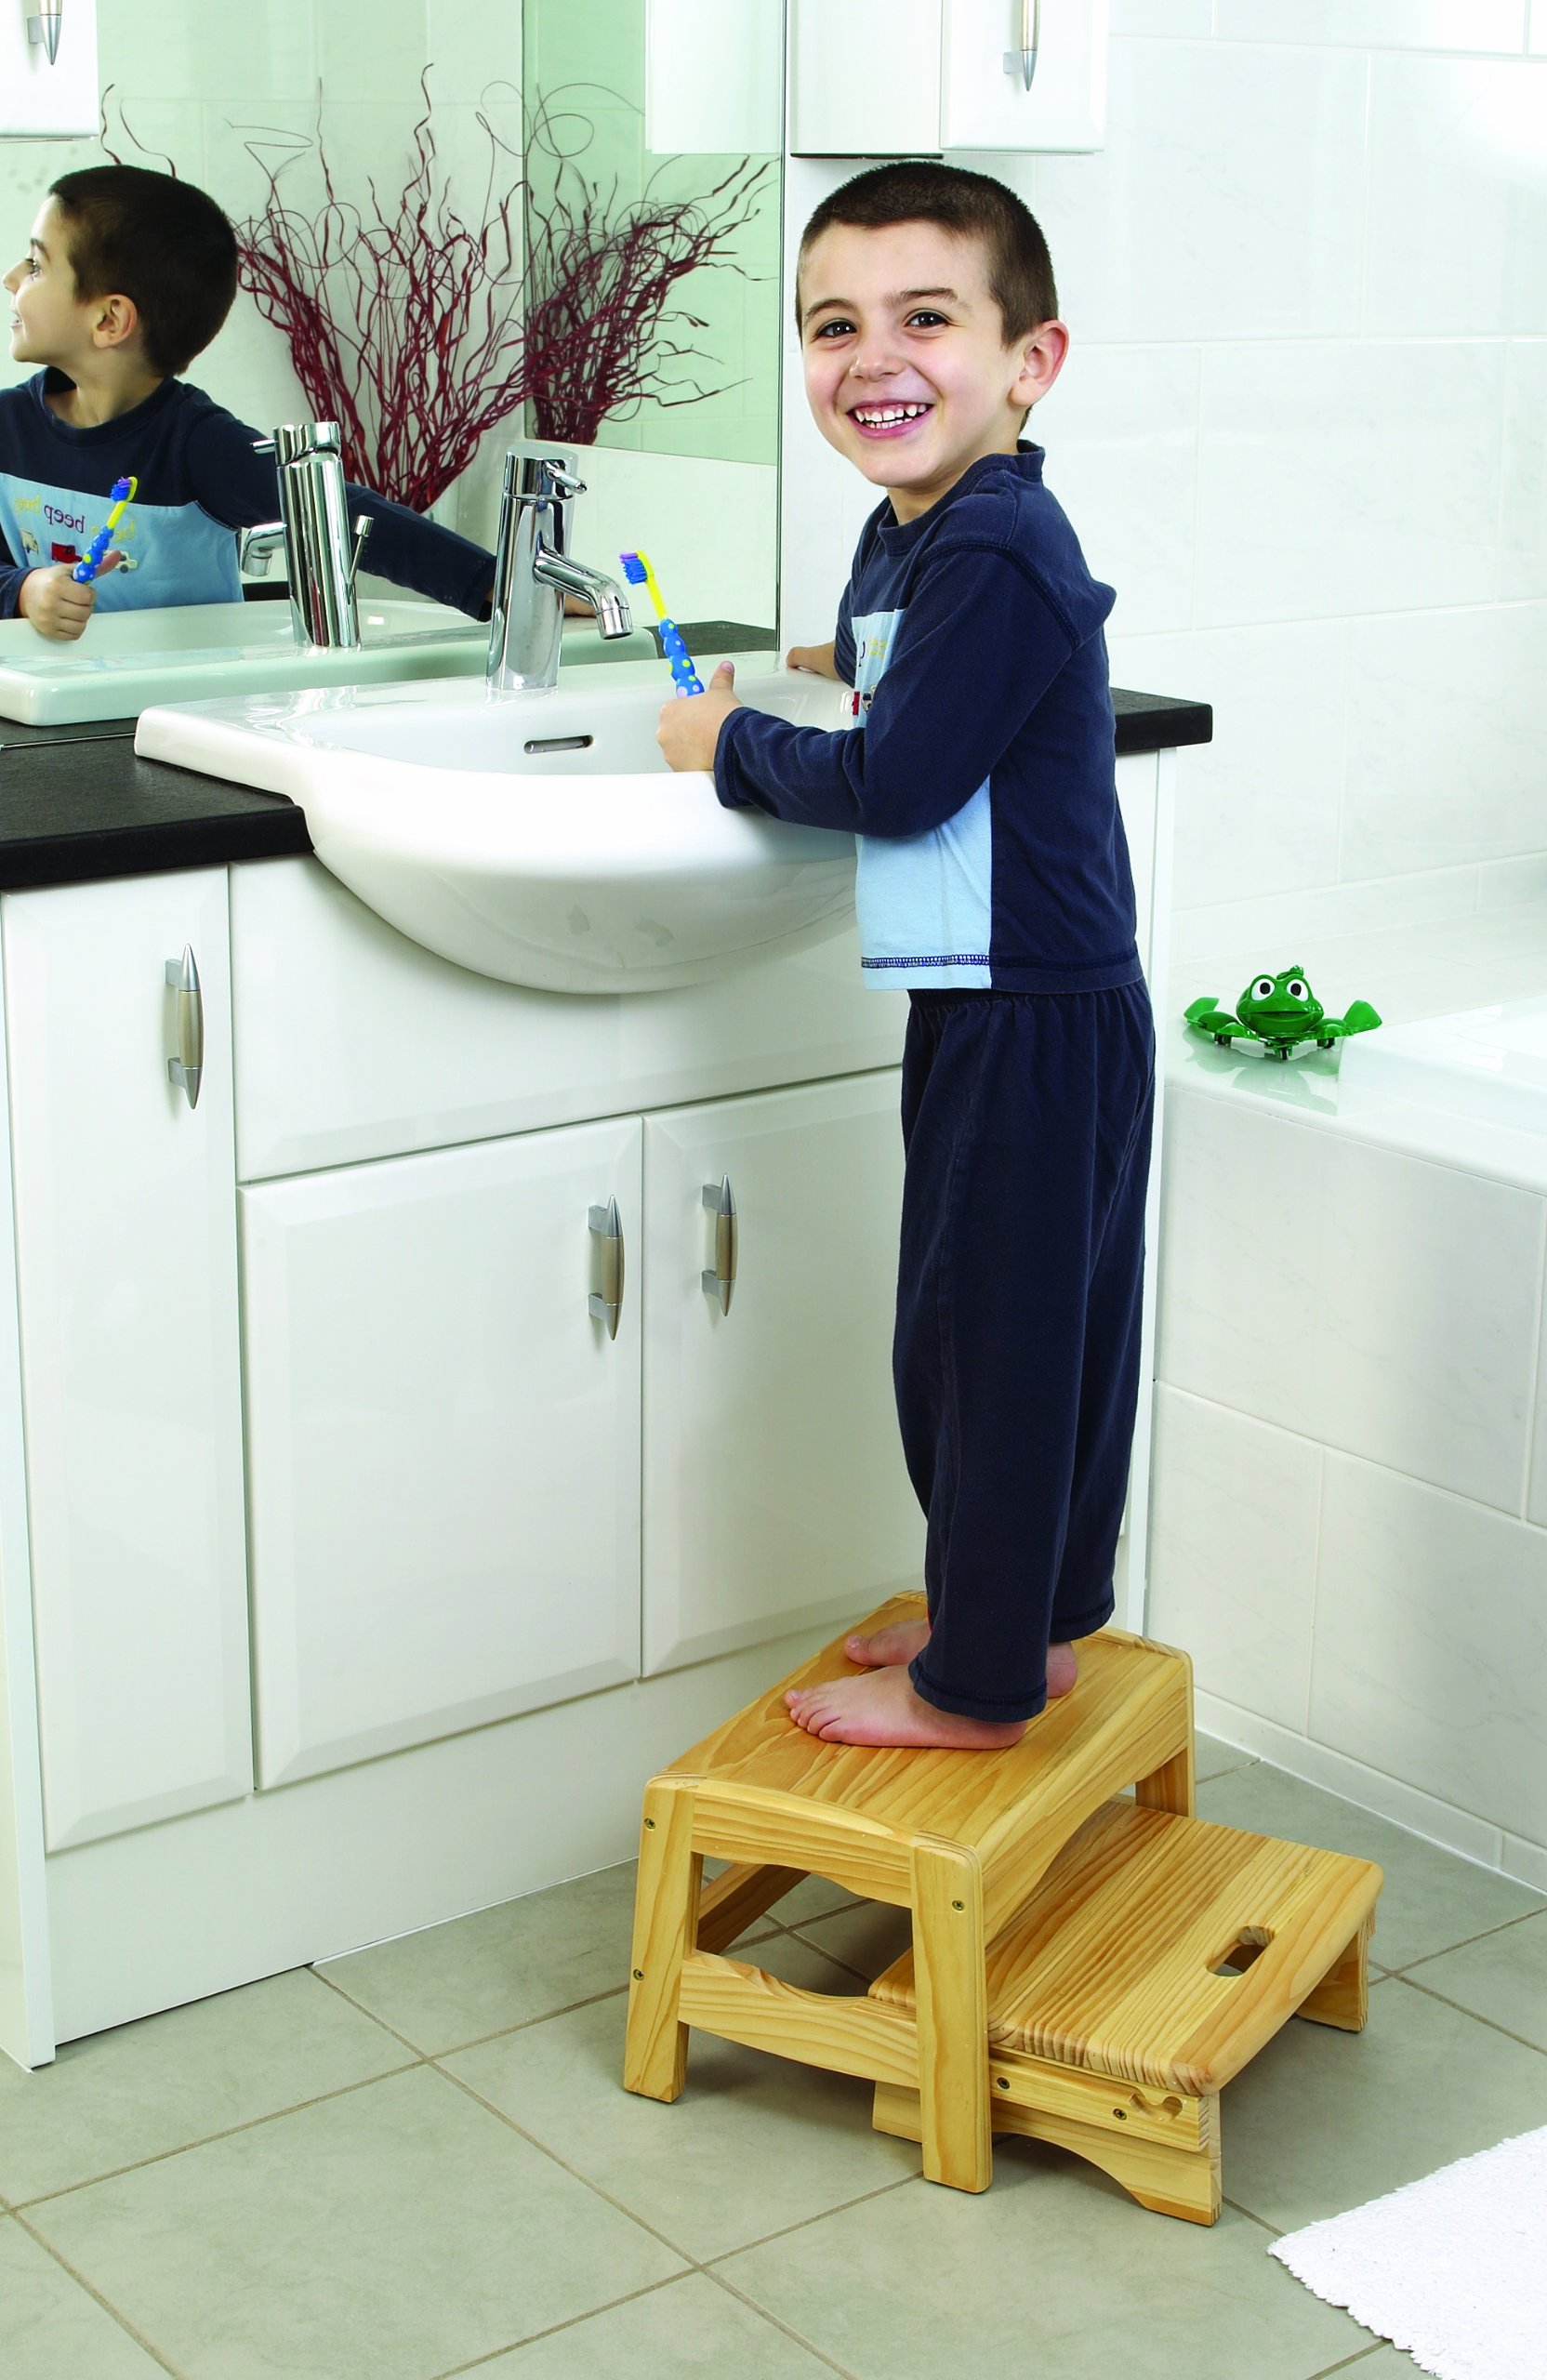 Safety 1st Solid Wooden 2 Step Stool with 2 Steps and Slip-Resistant Pads for Children and Toddlers, 18 m+  Solid wood stool suitable from 18 months to around 4 years or up to 22 kgs Lightweight design for easy portability Two levels help the child reach the sink 2